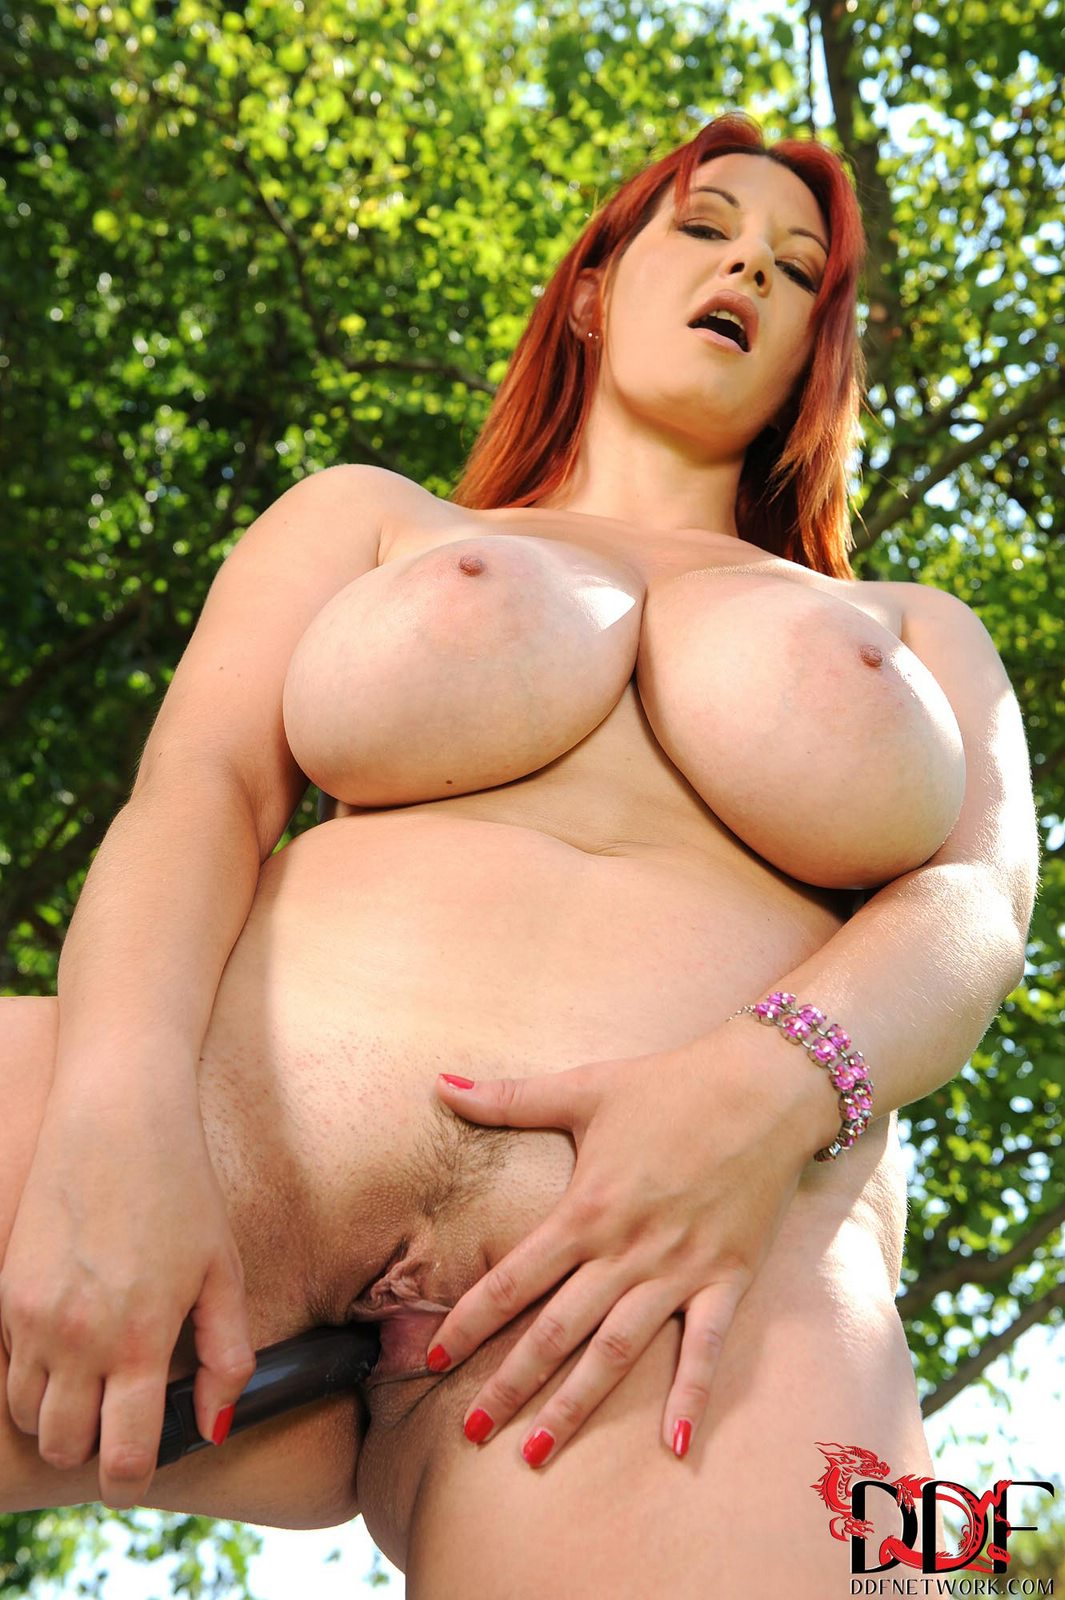 Hottest redheads in porn